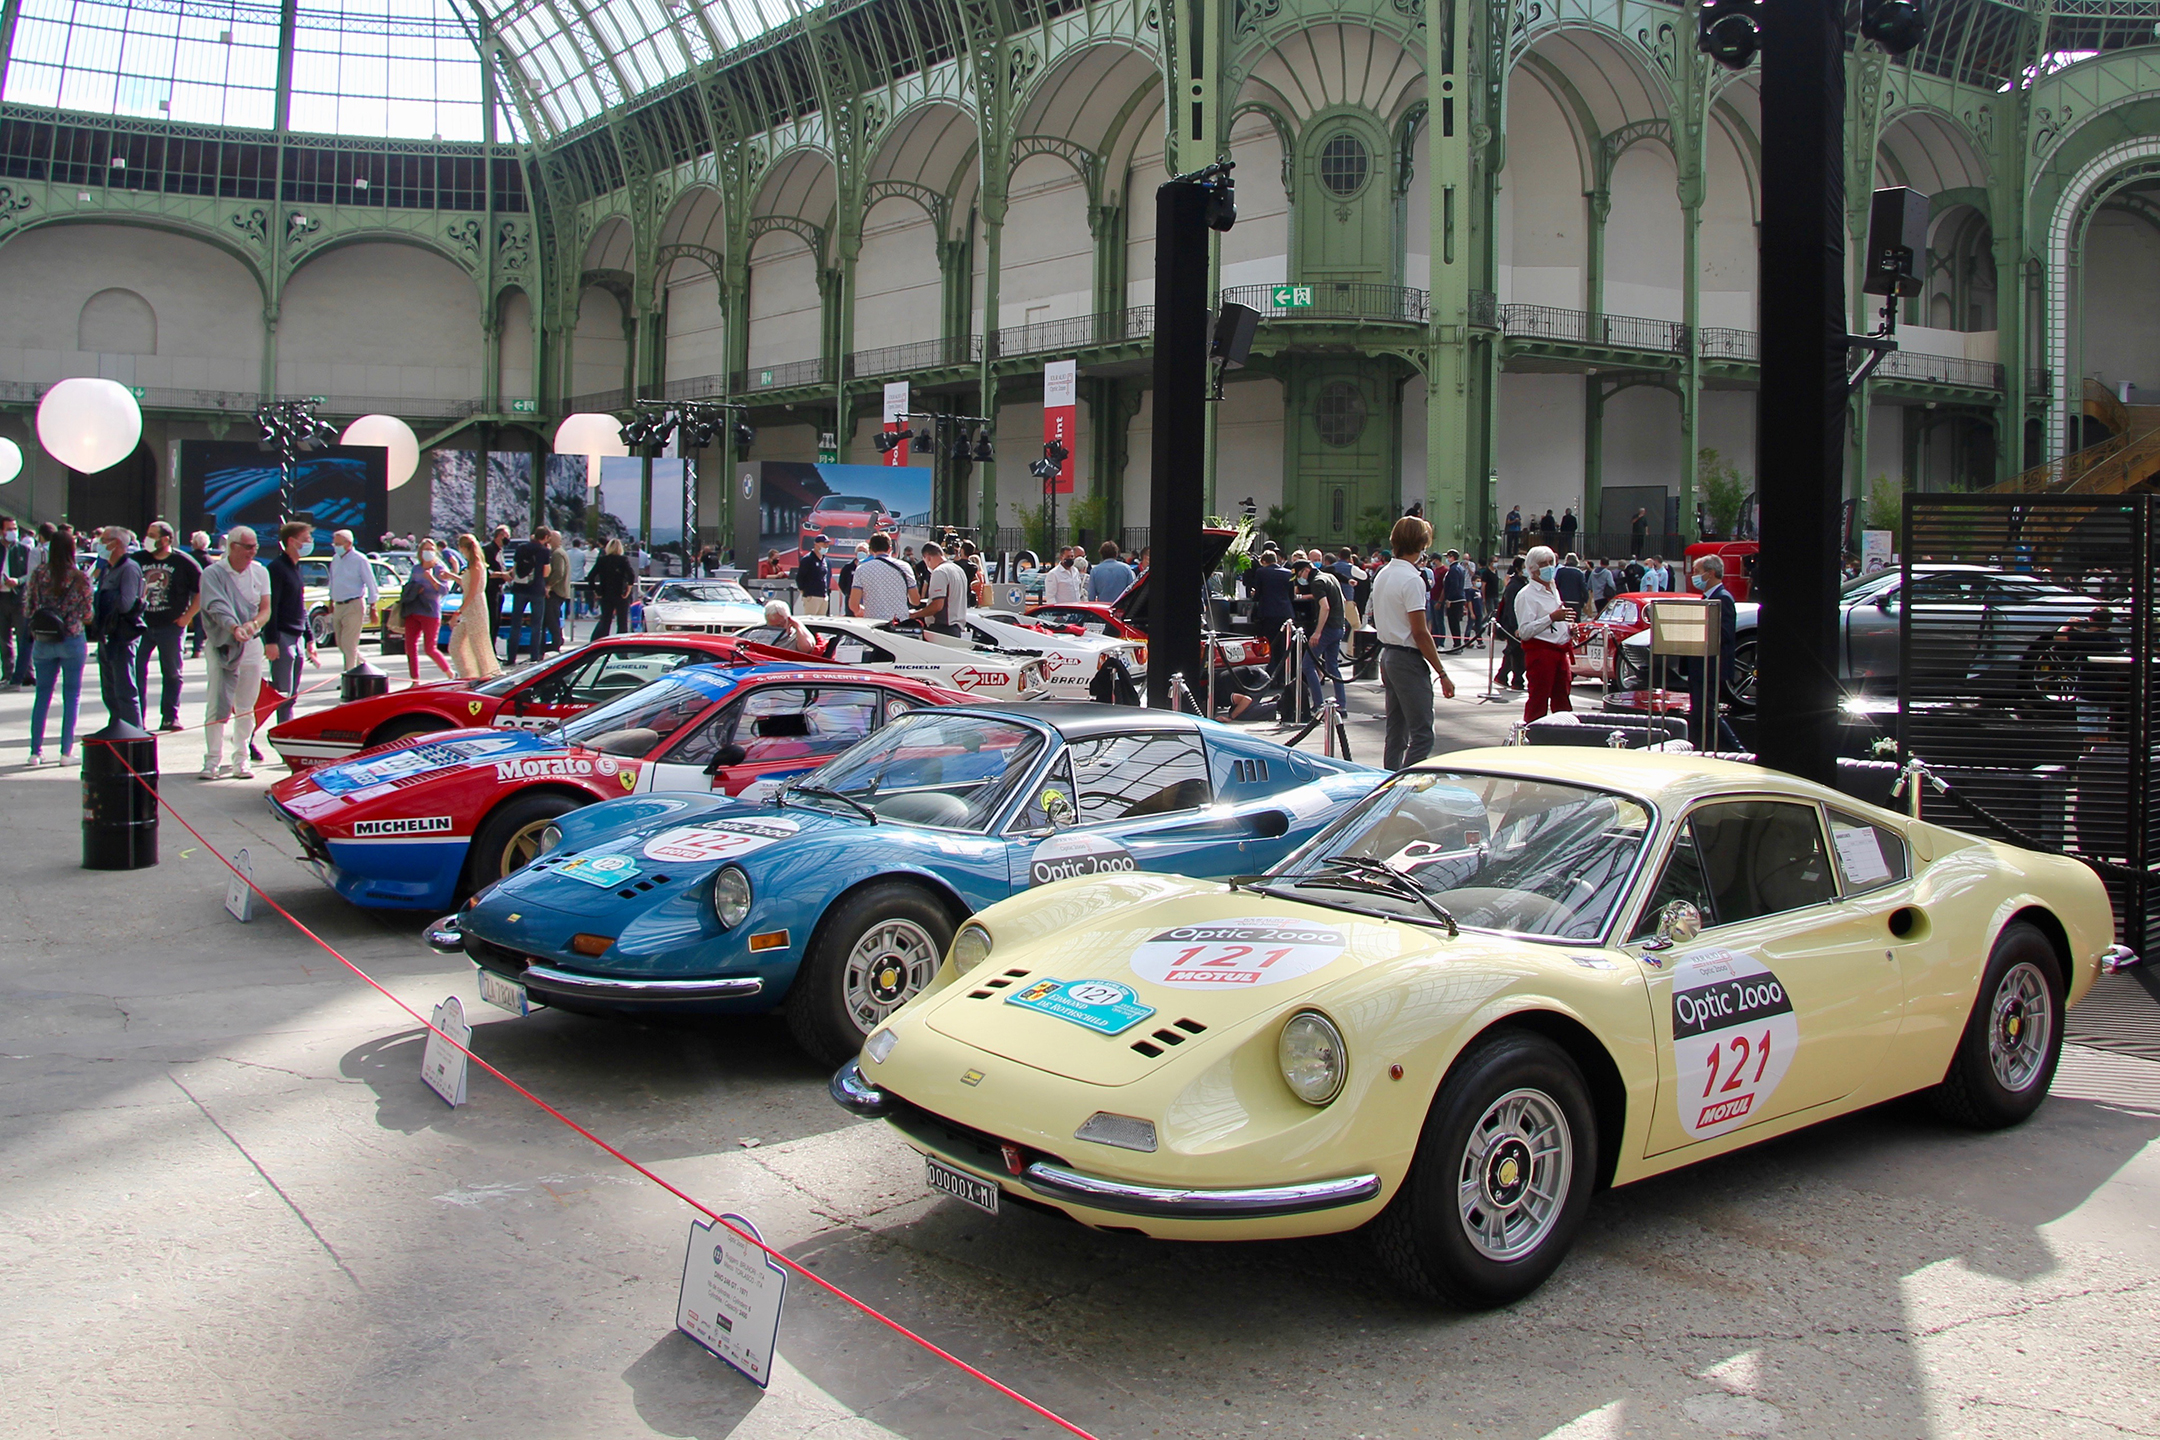 Ferrari Dino - expo Grand Palais - Paris - Tour Auto 2020 - photo Ludo Ferrari